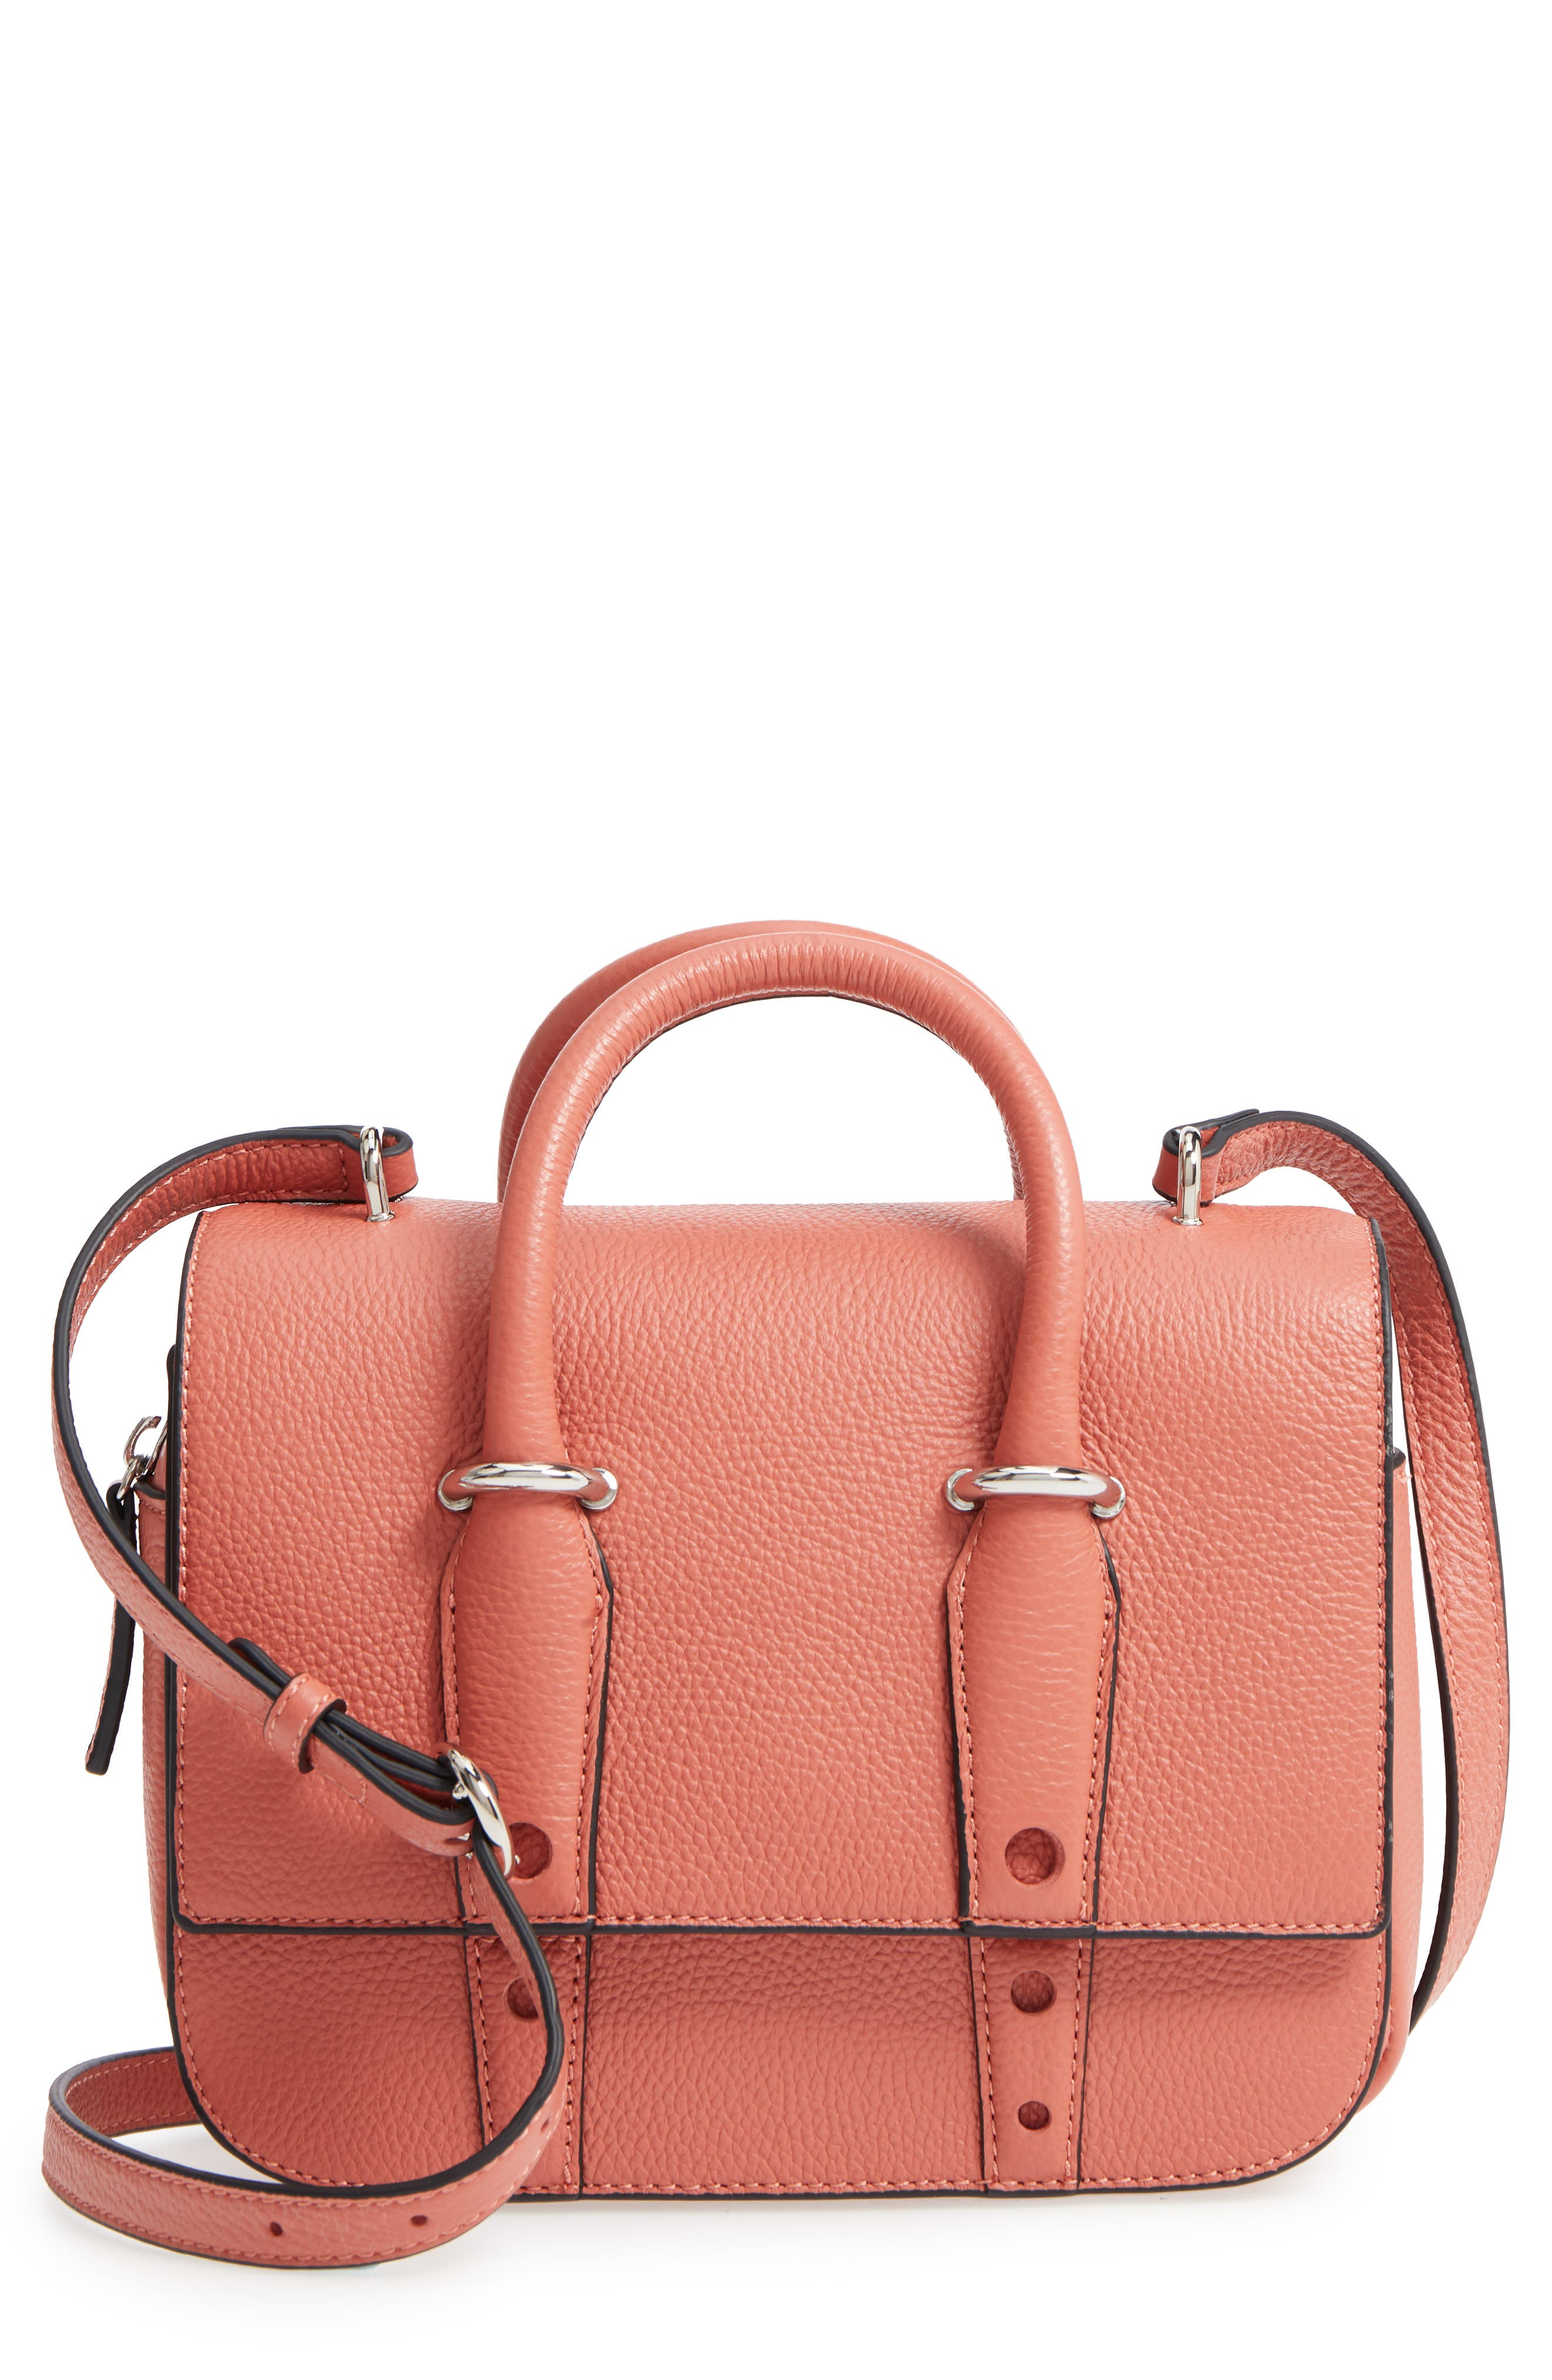 Kinsley Leather Crossbody Bag,                             Main thumbnail 1, color,                             Red